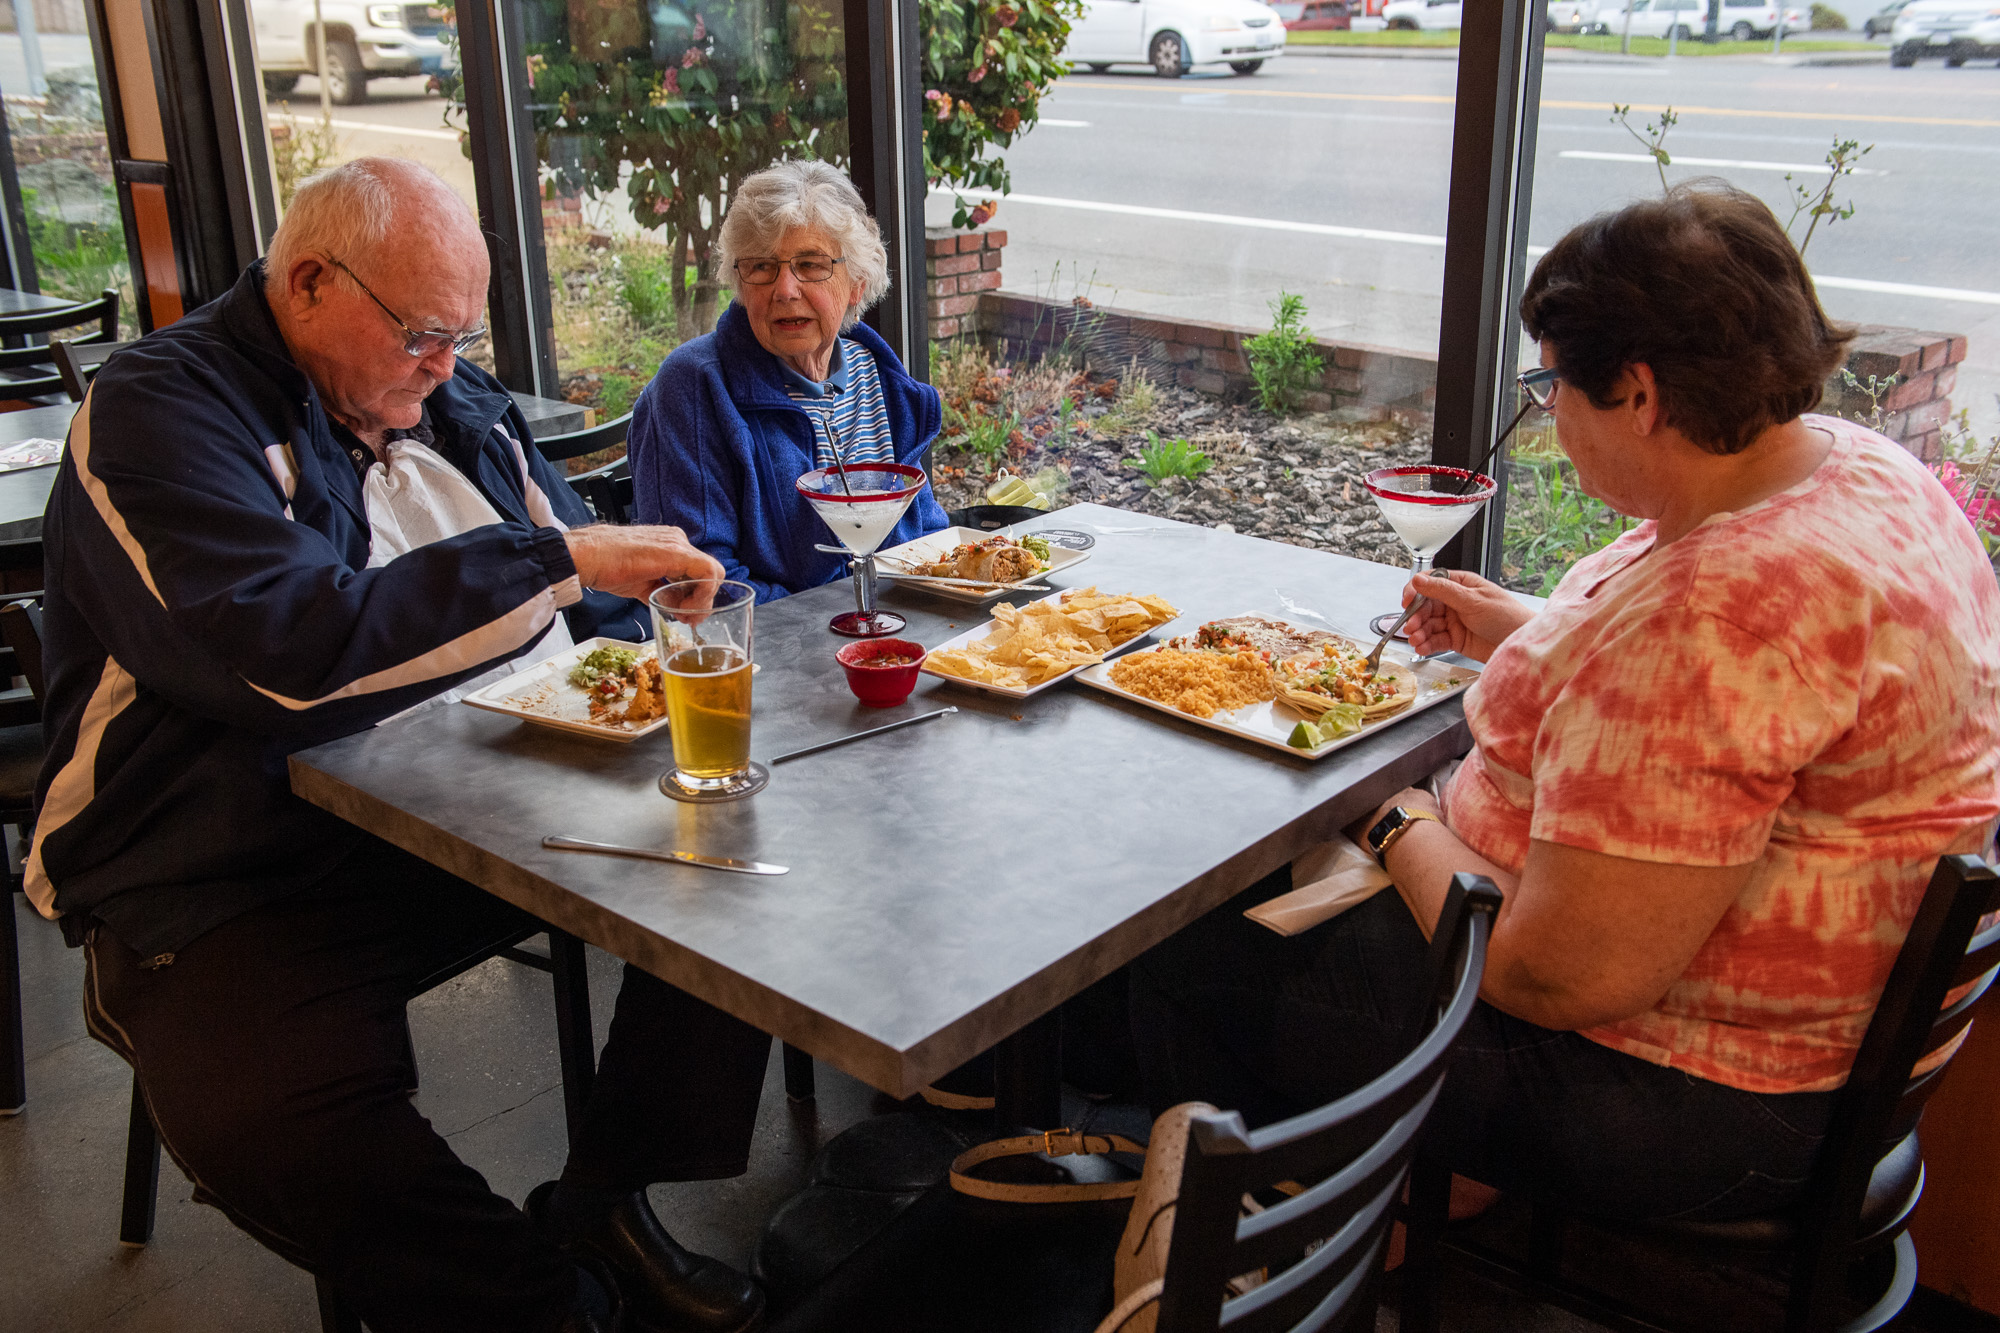 From left to right: Richard Cahill and Pat Cahill, of Ferndale, and Denise Cahill, who was visiting from Visalia, enjoy food at Tres Picosos on the first night of dinner service after easing of the shelter in place orders.